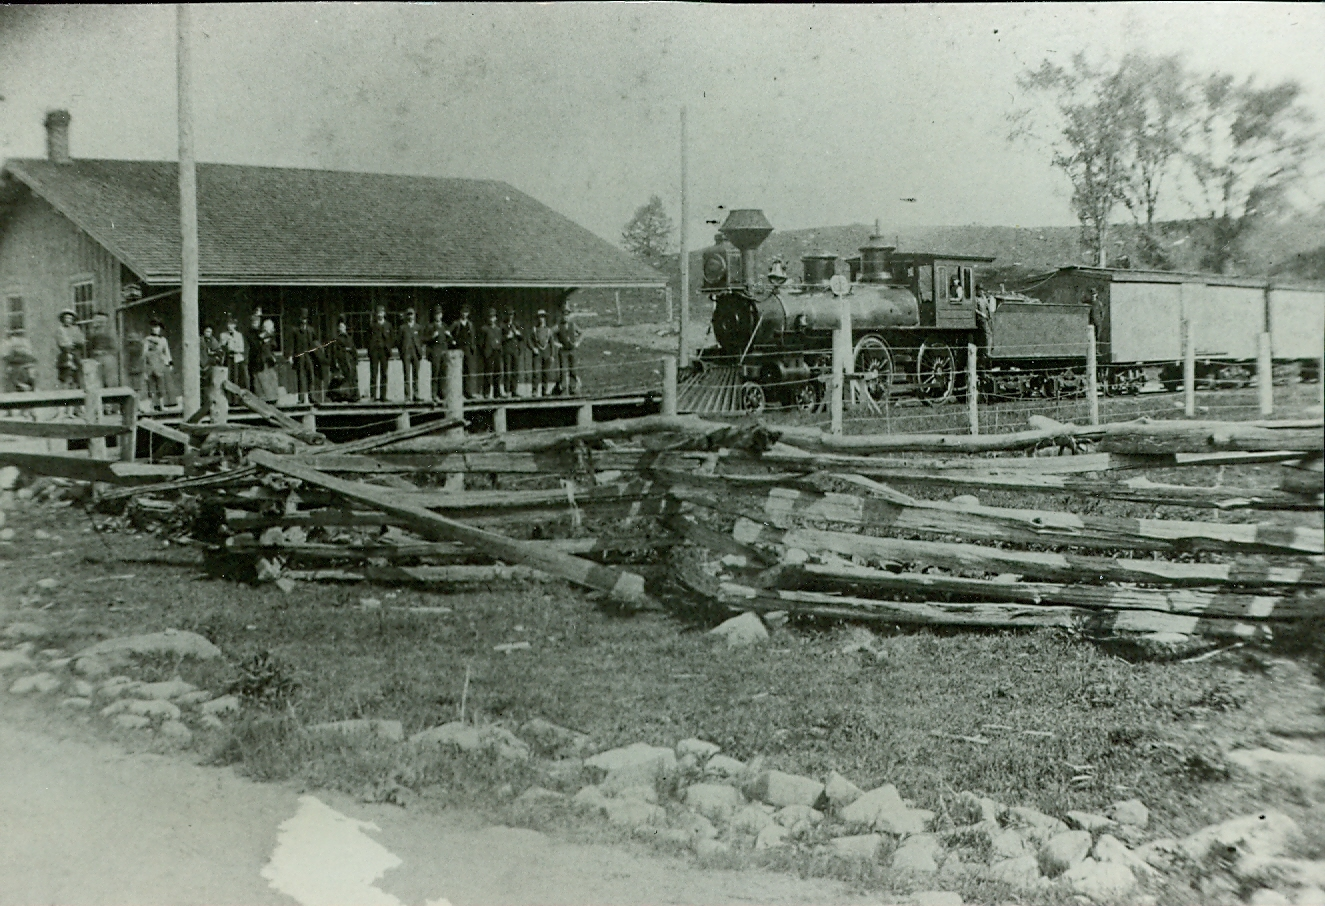 Central Ont. Railway, Marmora Station (Wolfe Station) 1884